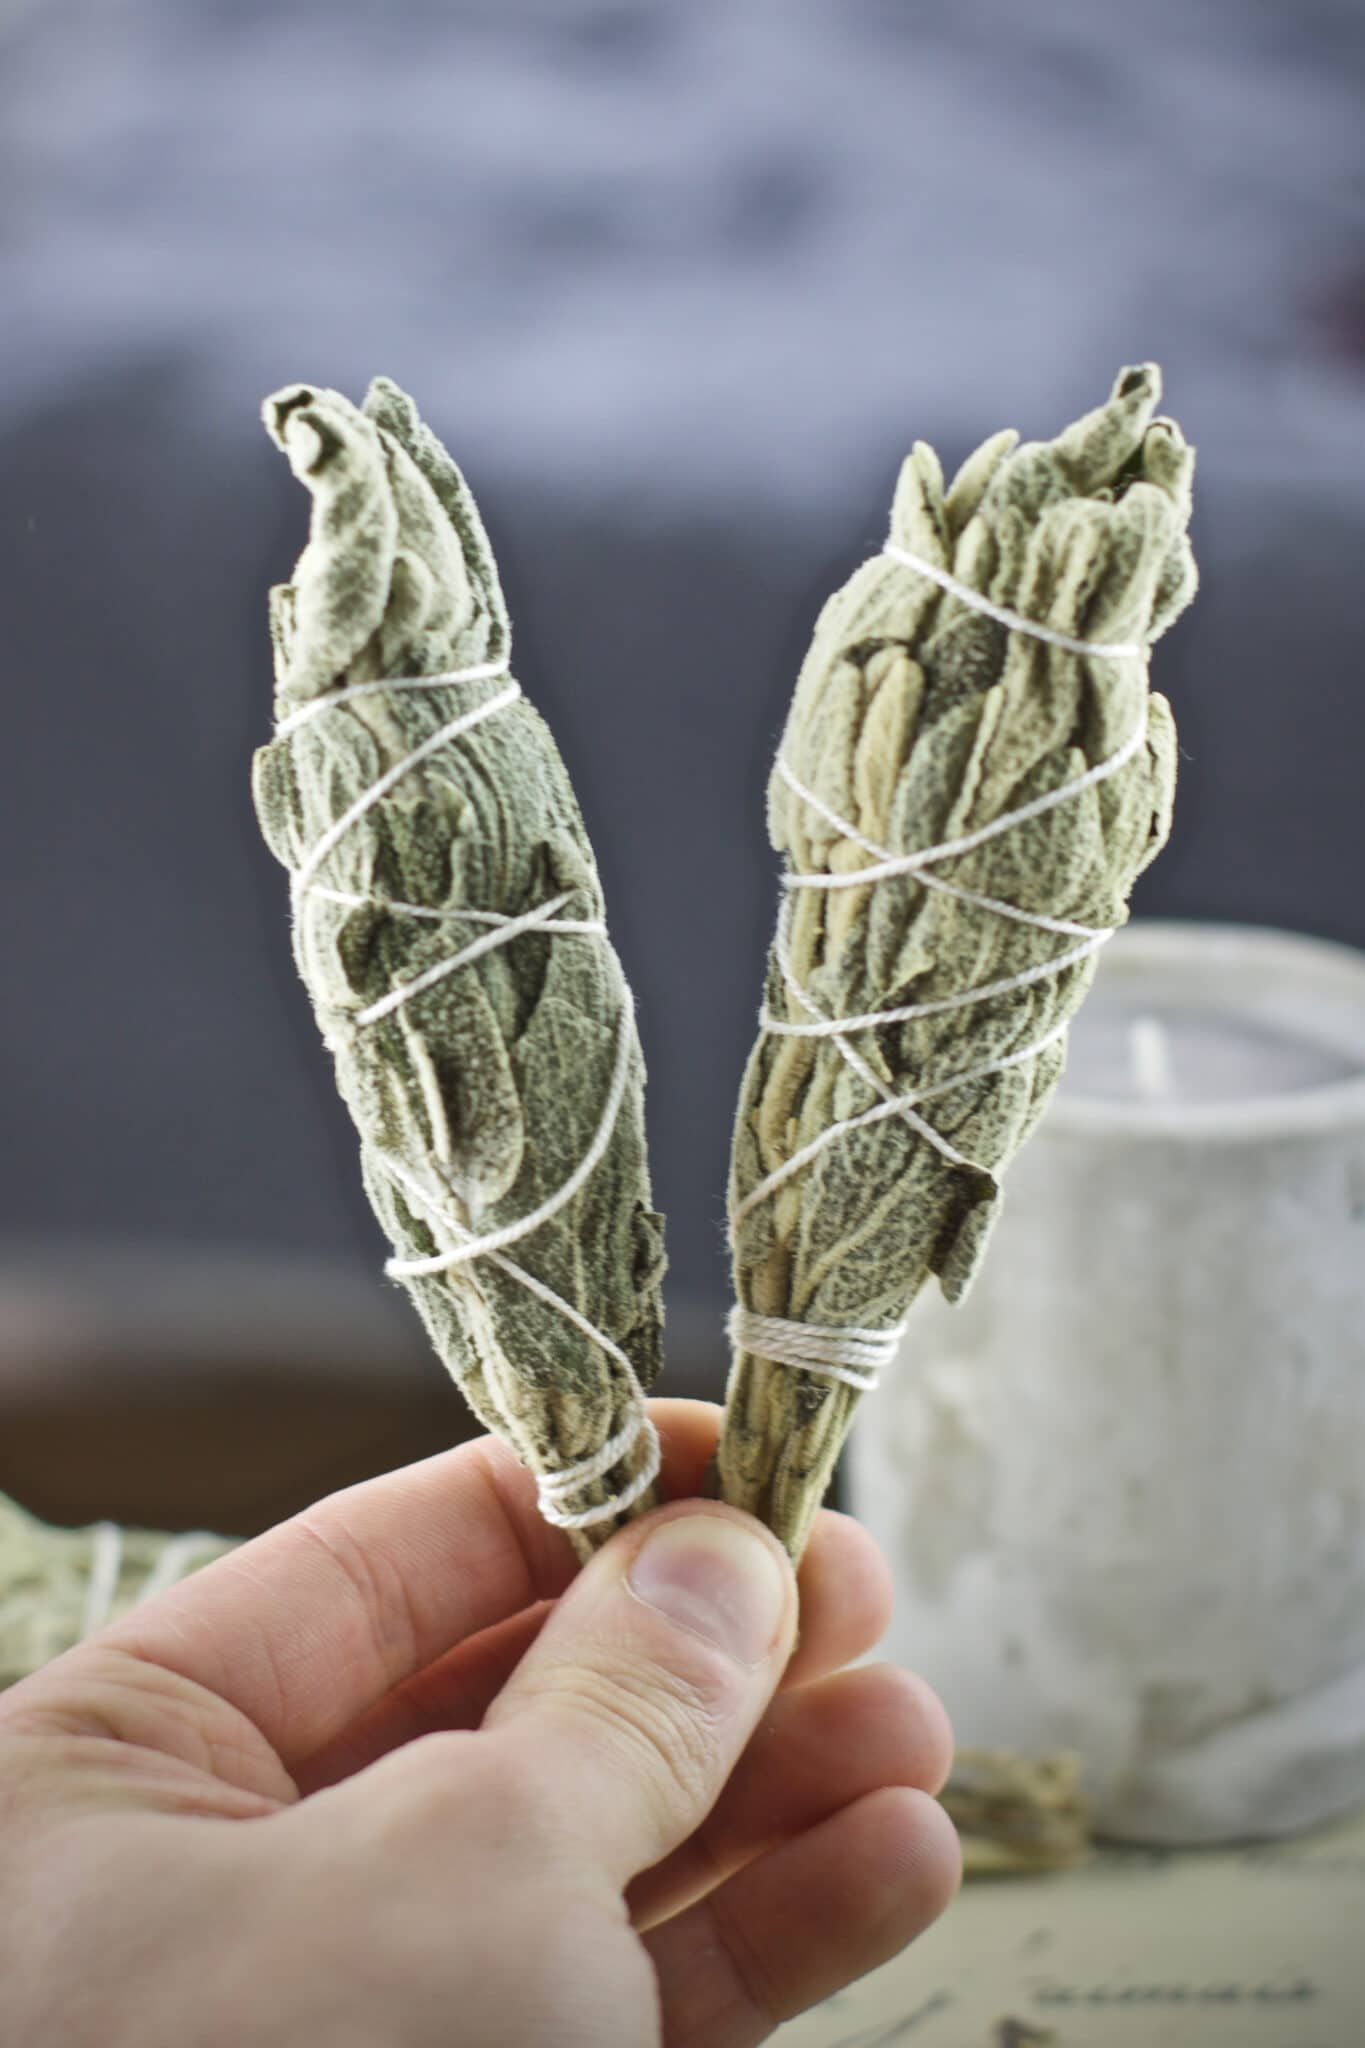 Two sage smudge sticks wrapped in white string.